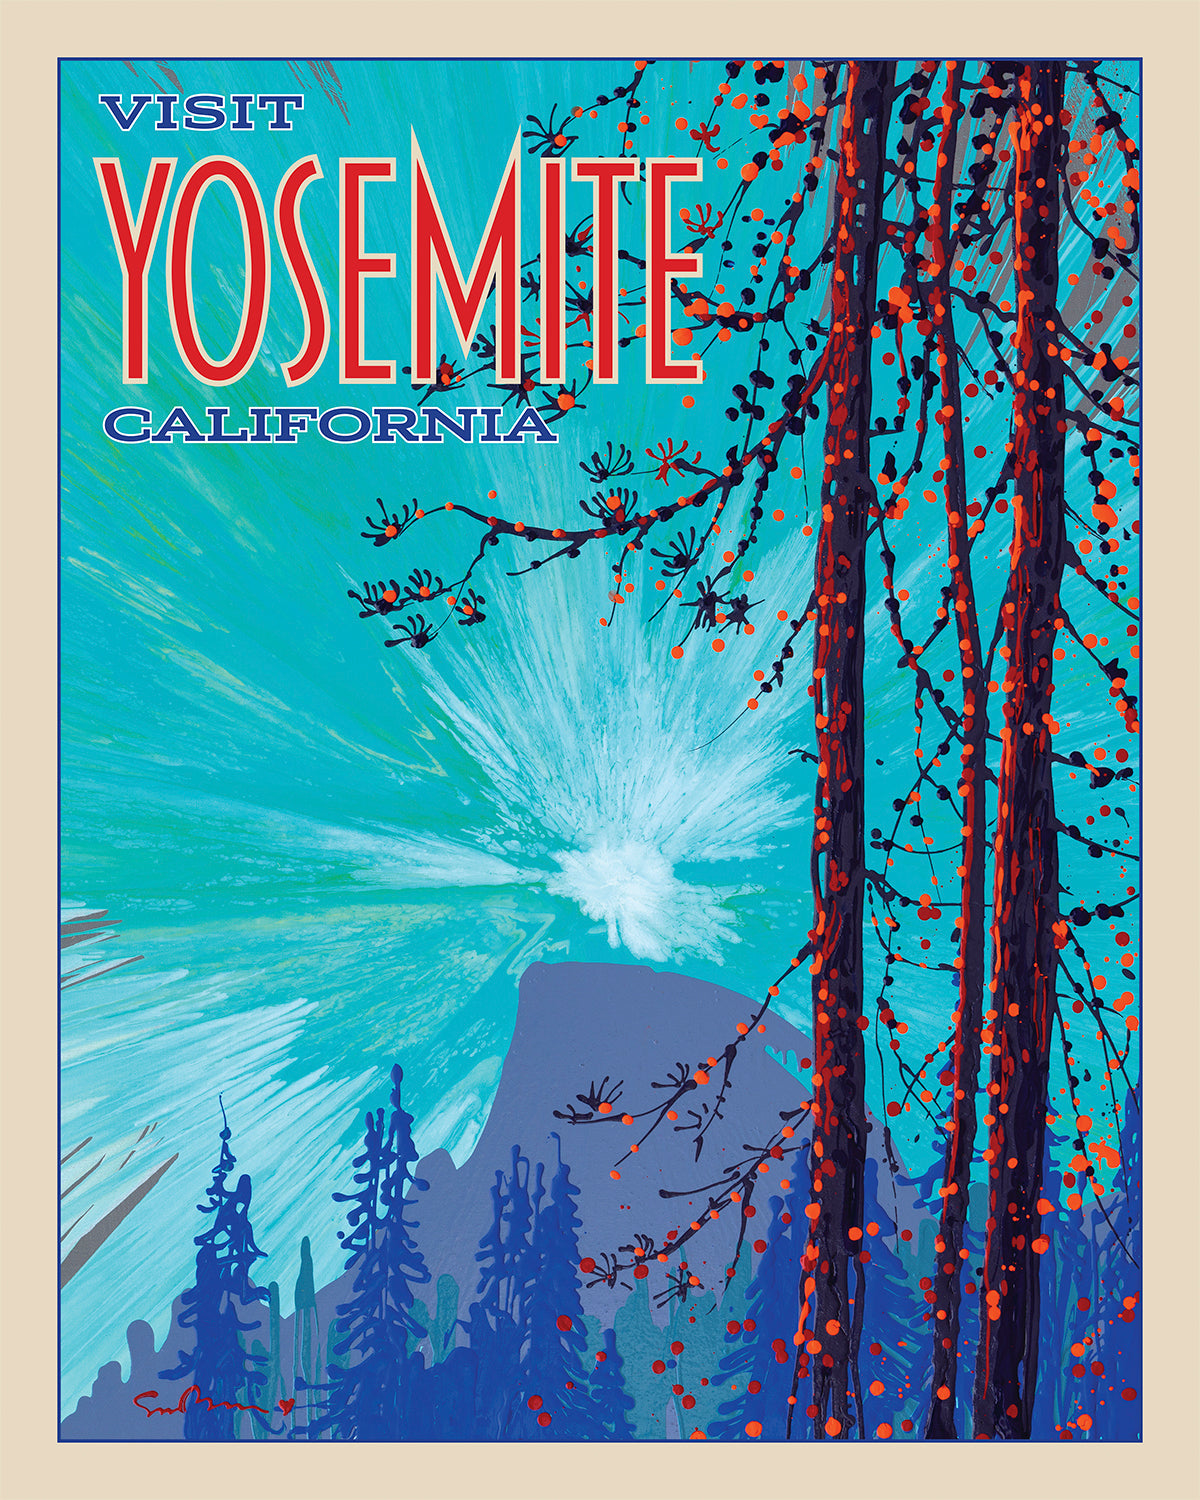 Yosemite: Half Dome - Travel Poster